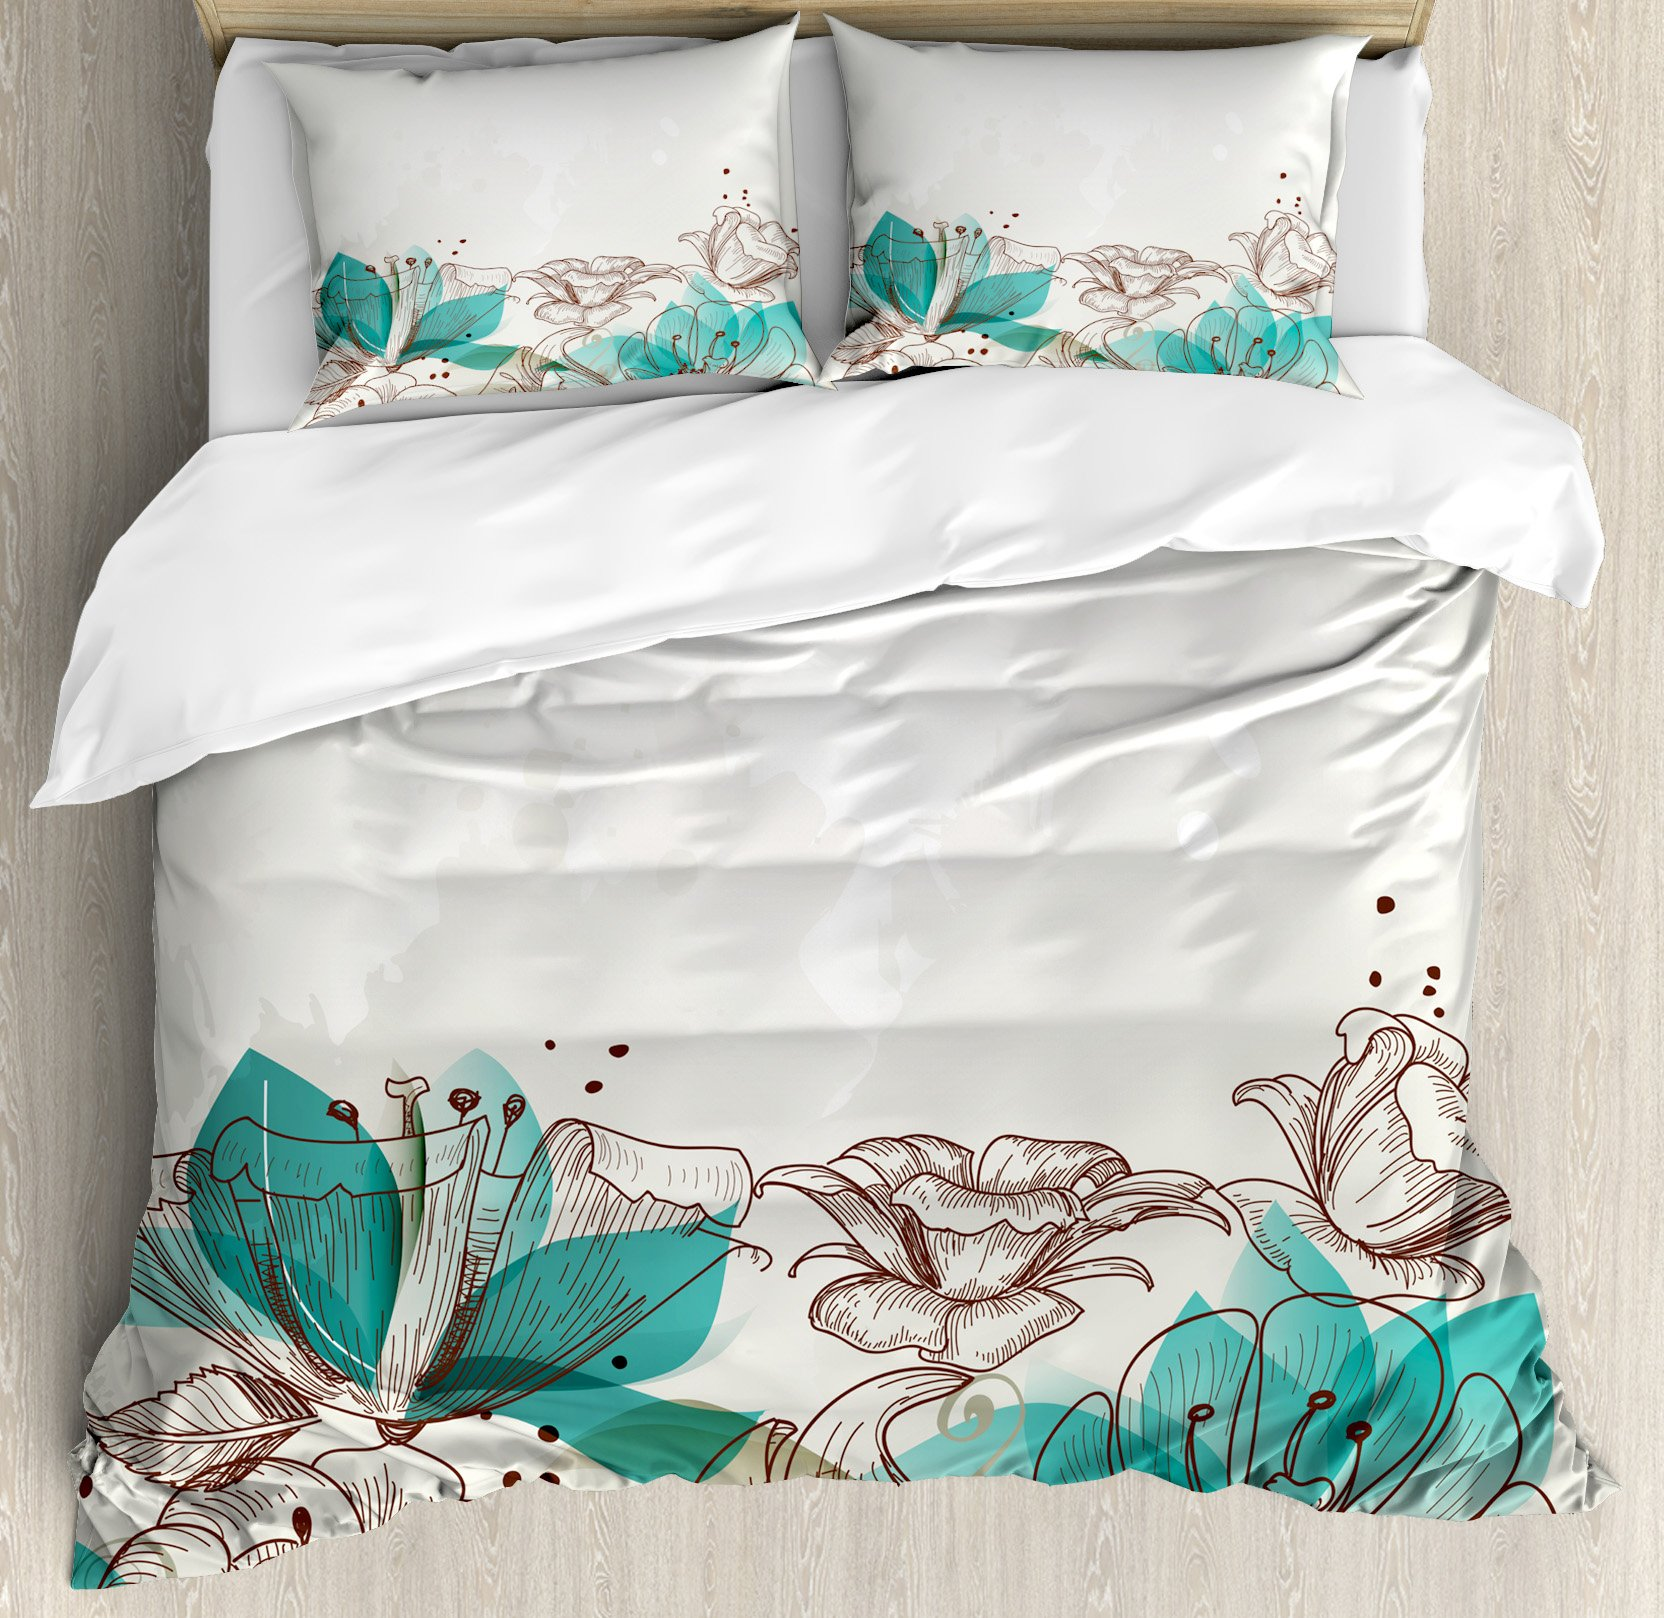 Ambesonne Turquoise Decor Duvet Cover Set, Retro Floral Background with Hibiscus Silhouettes Dramatic Romantic Nature Art, 3 Piece Bedding Set with Pillow Shams, Queen/Full, Beige Teal